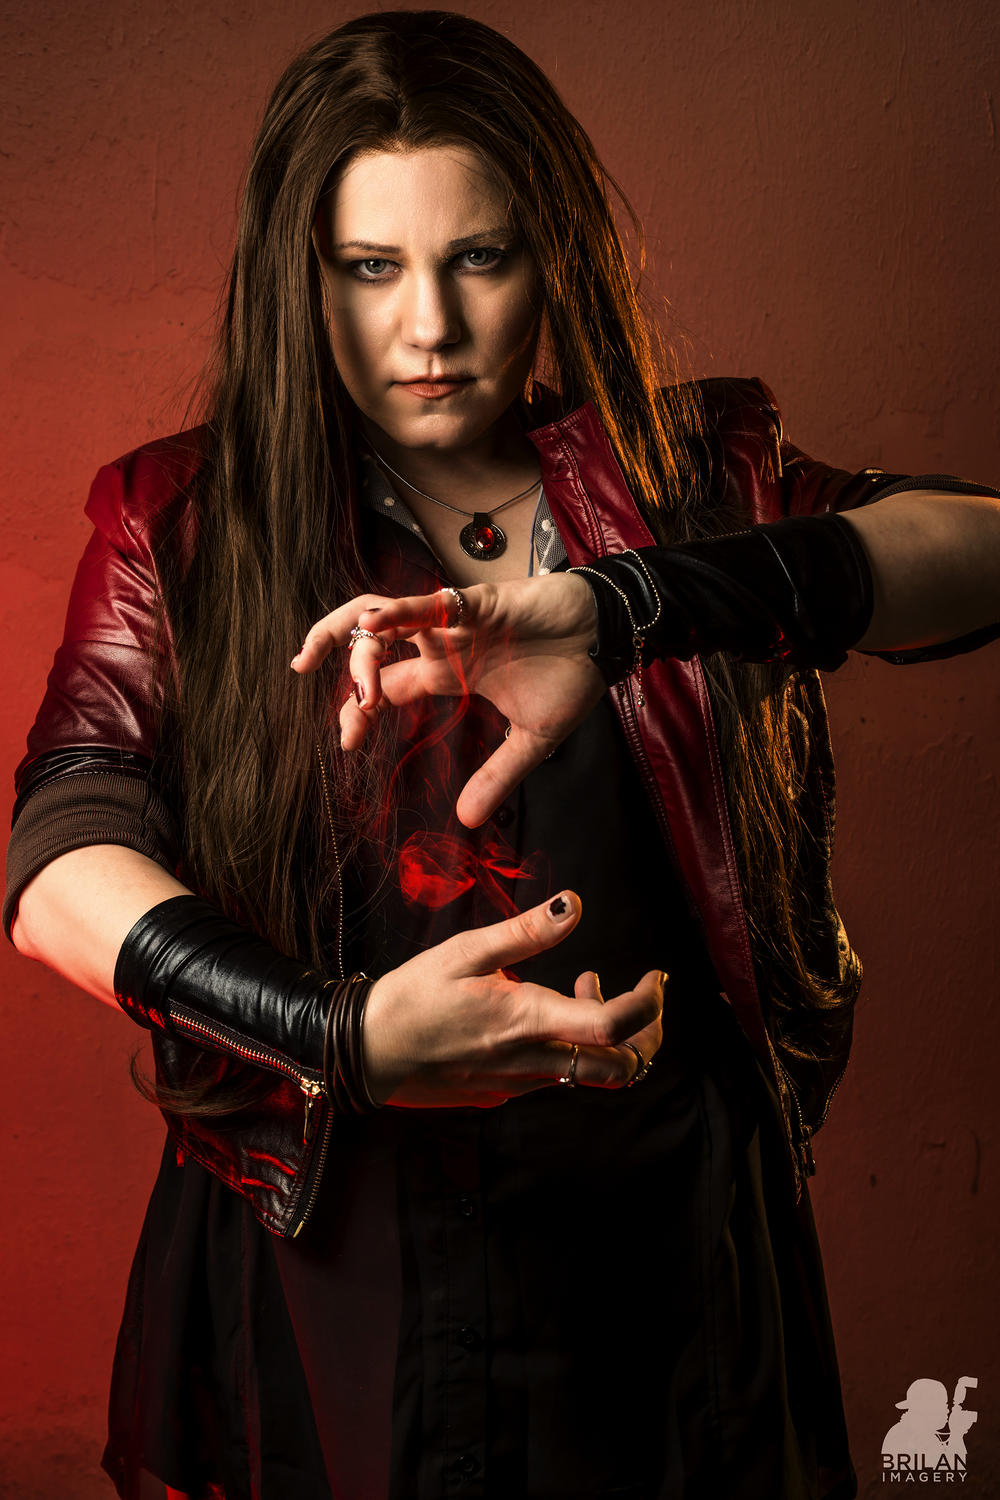 Jessica Wolf AKA WolfBustin as Scarlet Witch